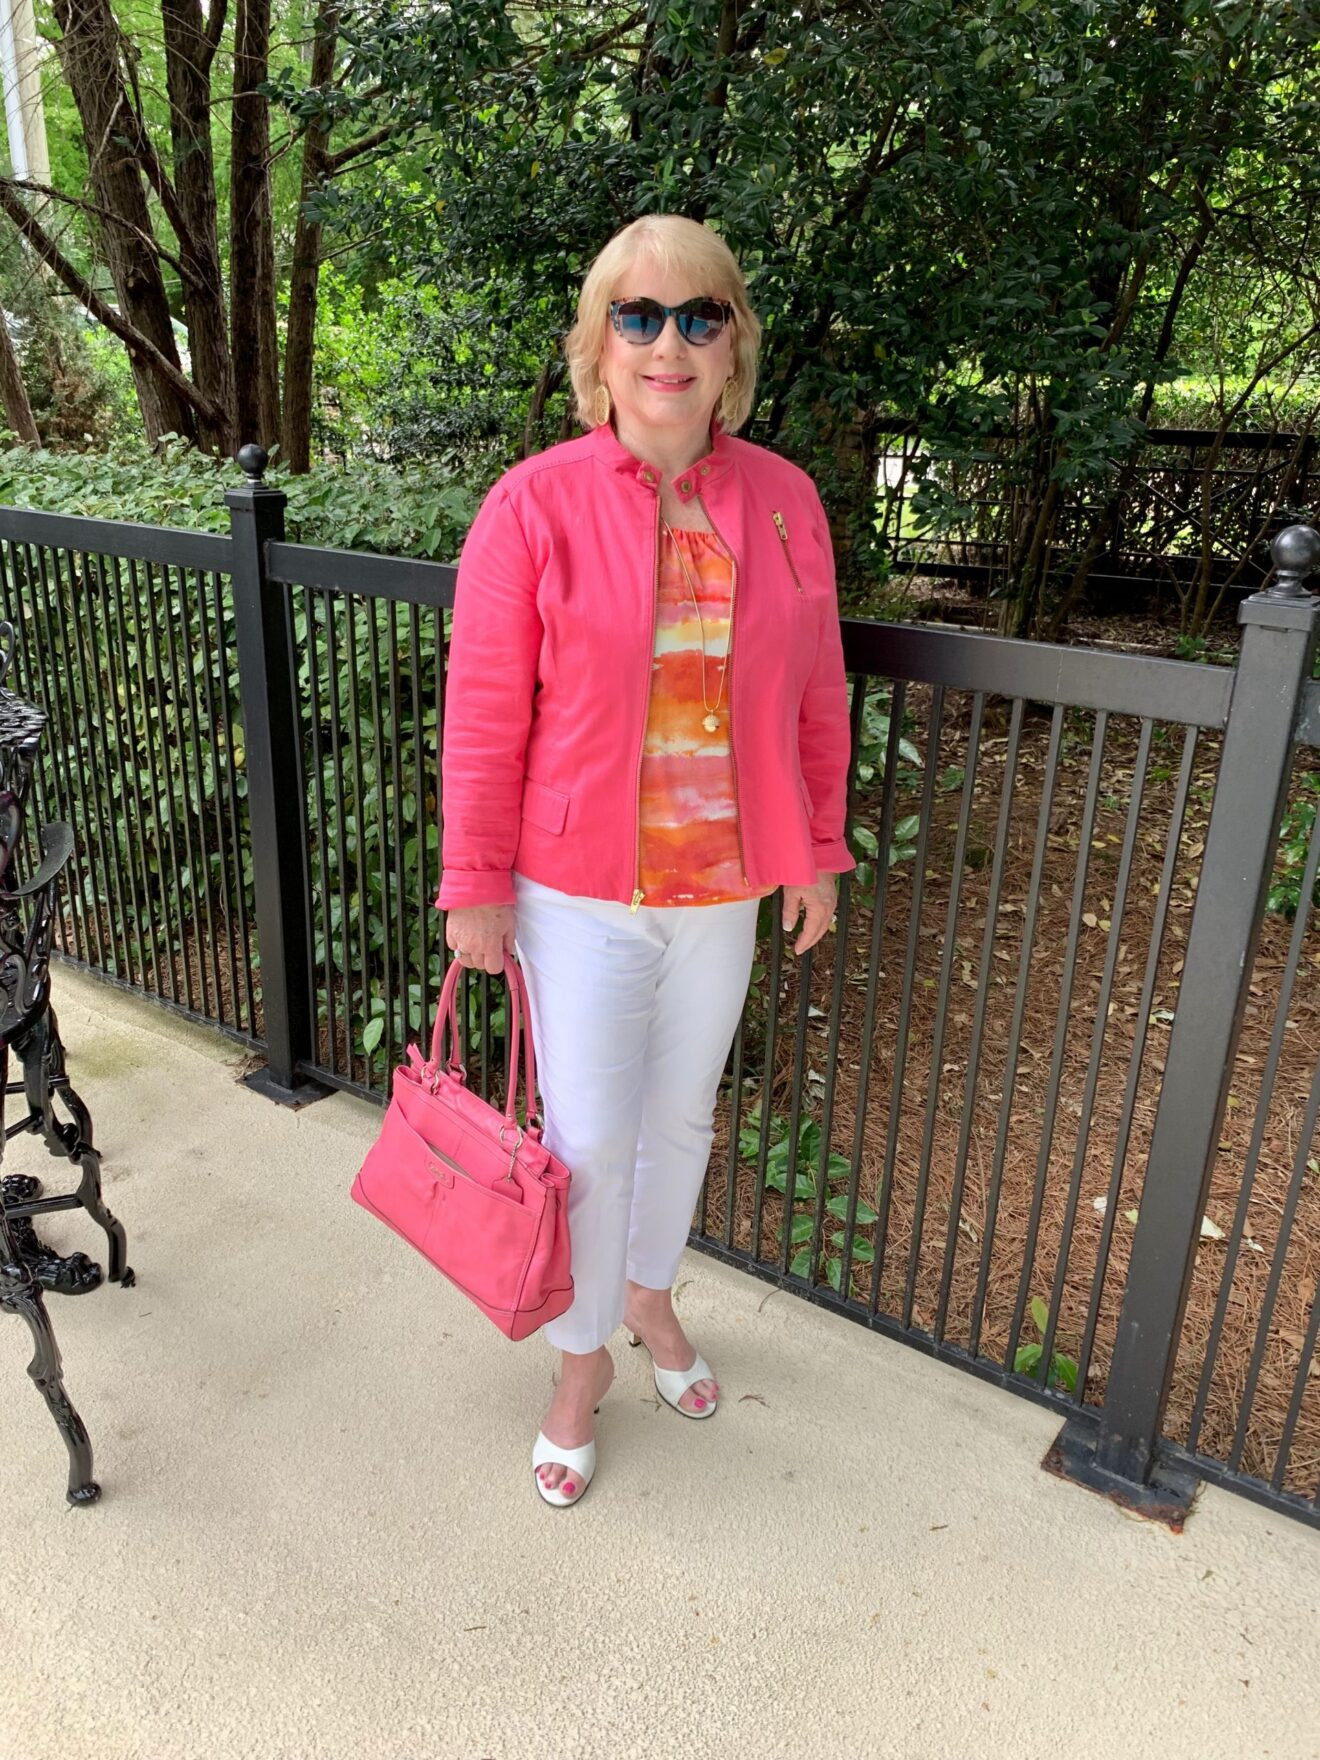 Style Story Interview Classy Colorful Confidence @StyleShennanigans Shannon Holmes Fashion Over 50 60 Confident White Bright Pink and Orange Outfit Story Behind The Cloth scaled